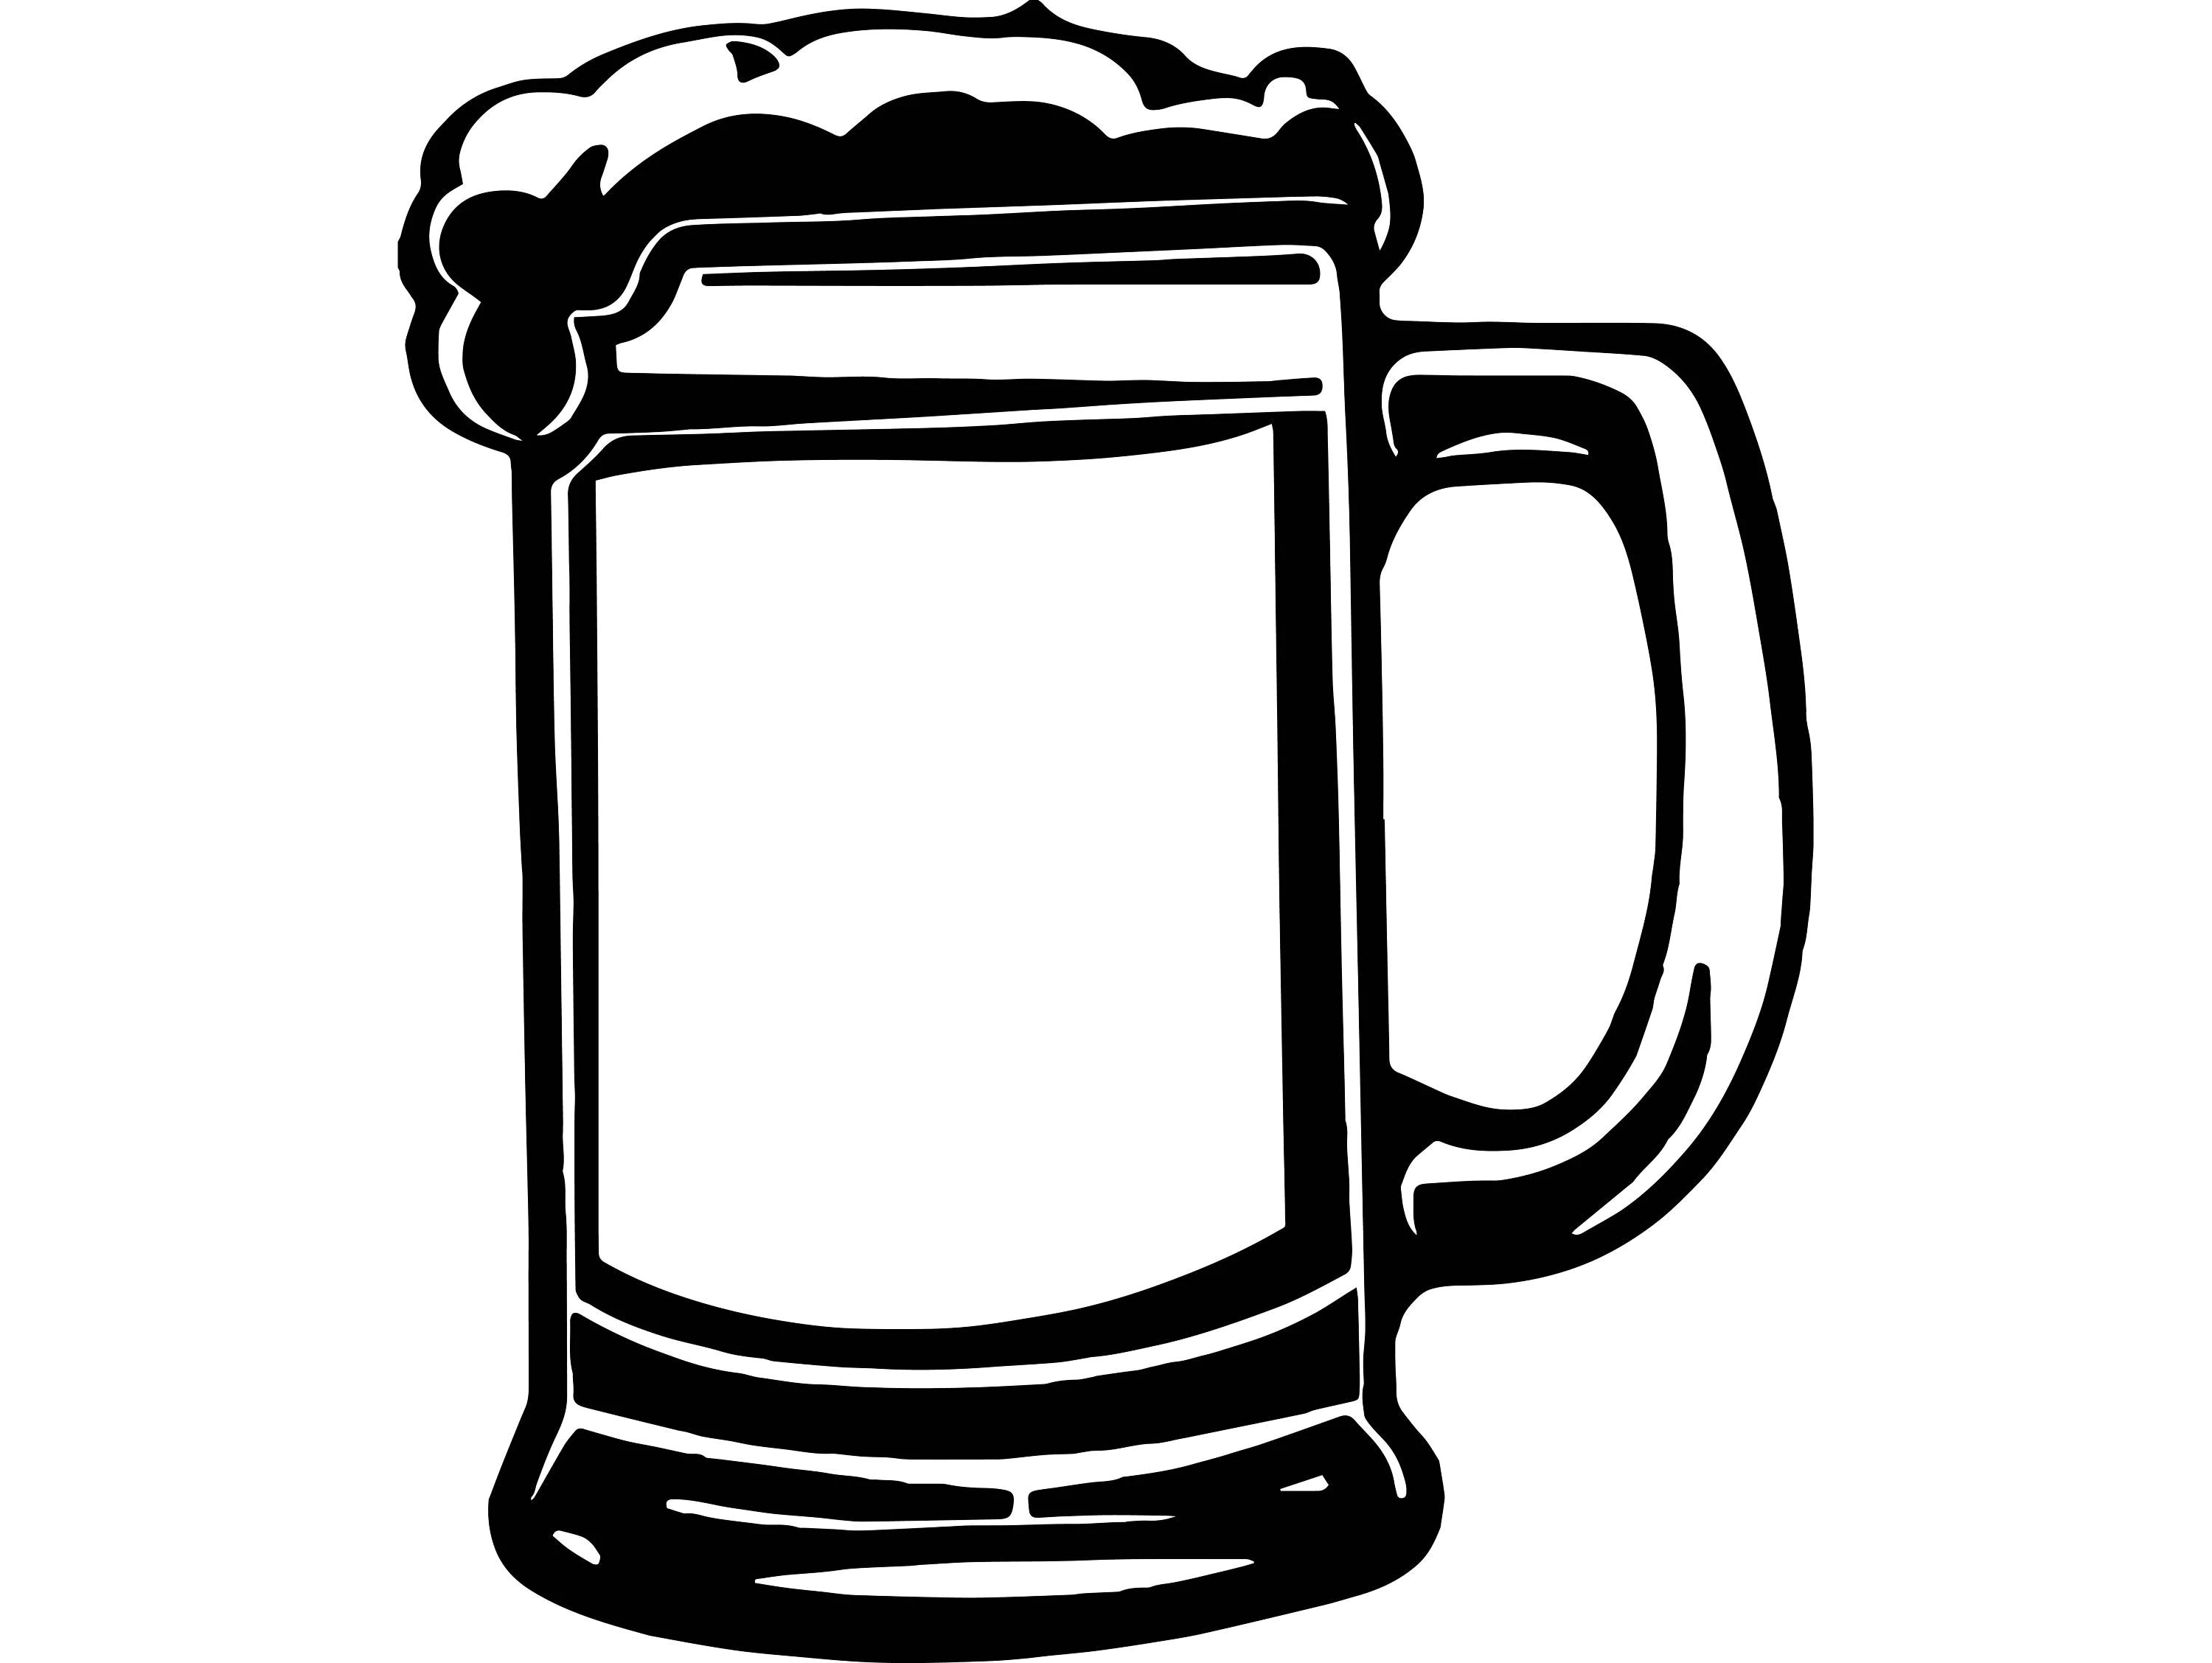 Beer Mug Cerveza Delicious Recreational Drink Alcohol Cold